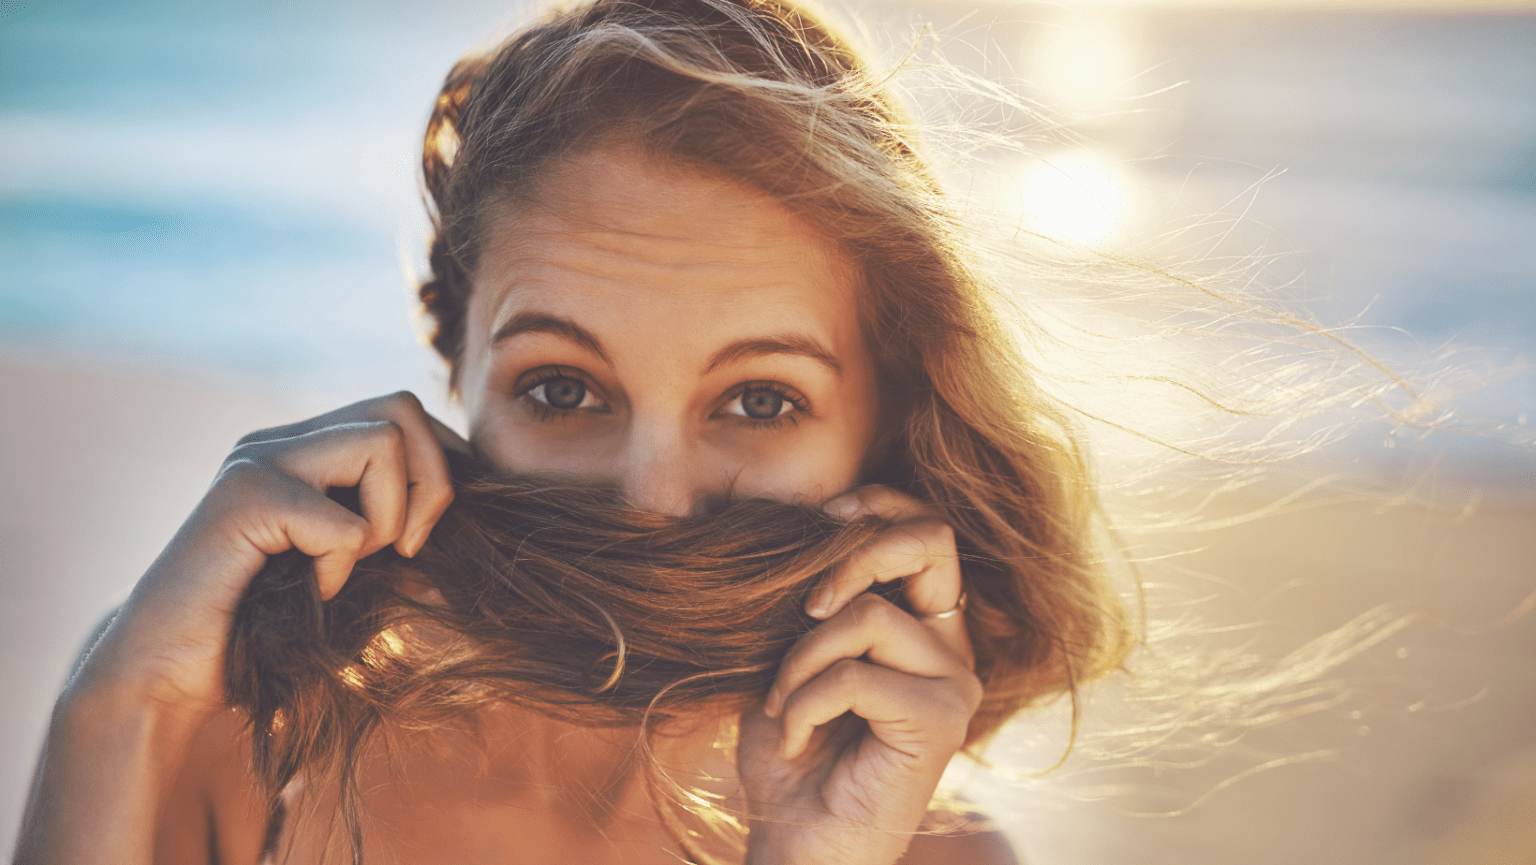 How to take care of your hair in the summer?